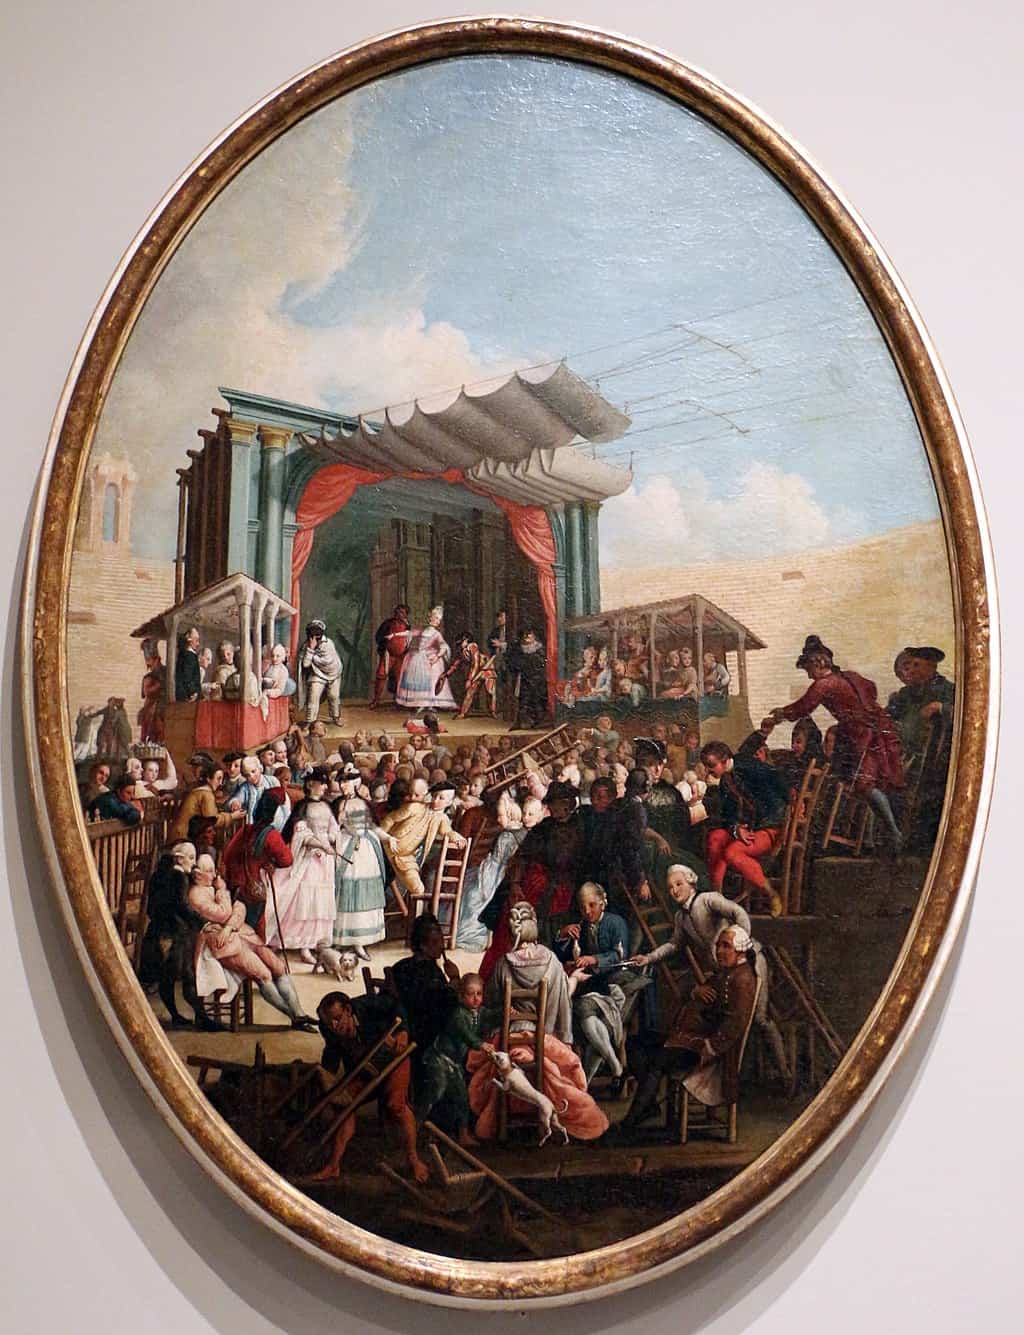 An oil painting from Chicago showing a Commedia Italiana at Verona